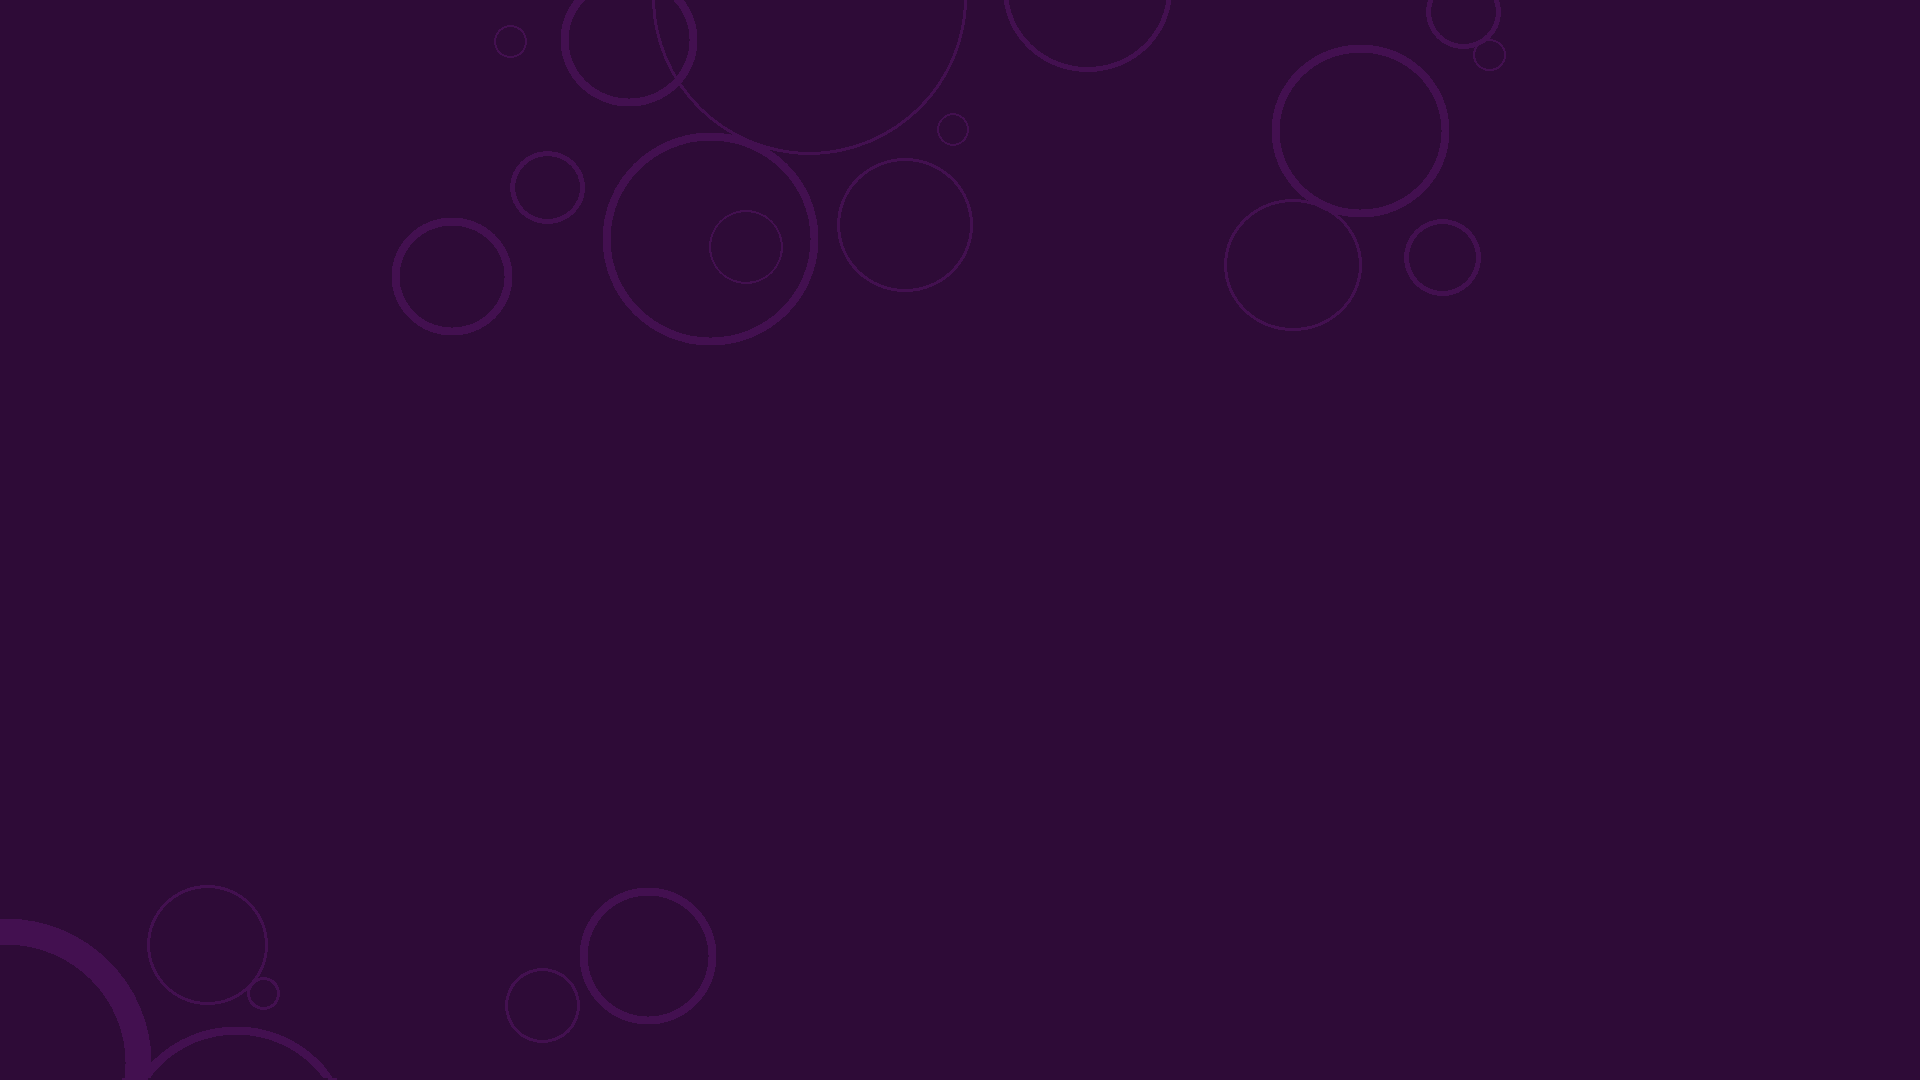 Windows 8 background images - Purple Windows 8 Bubbles Background By Gifteddeviant On Deviantart